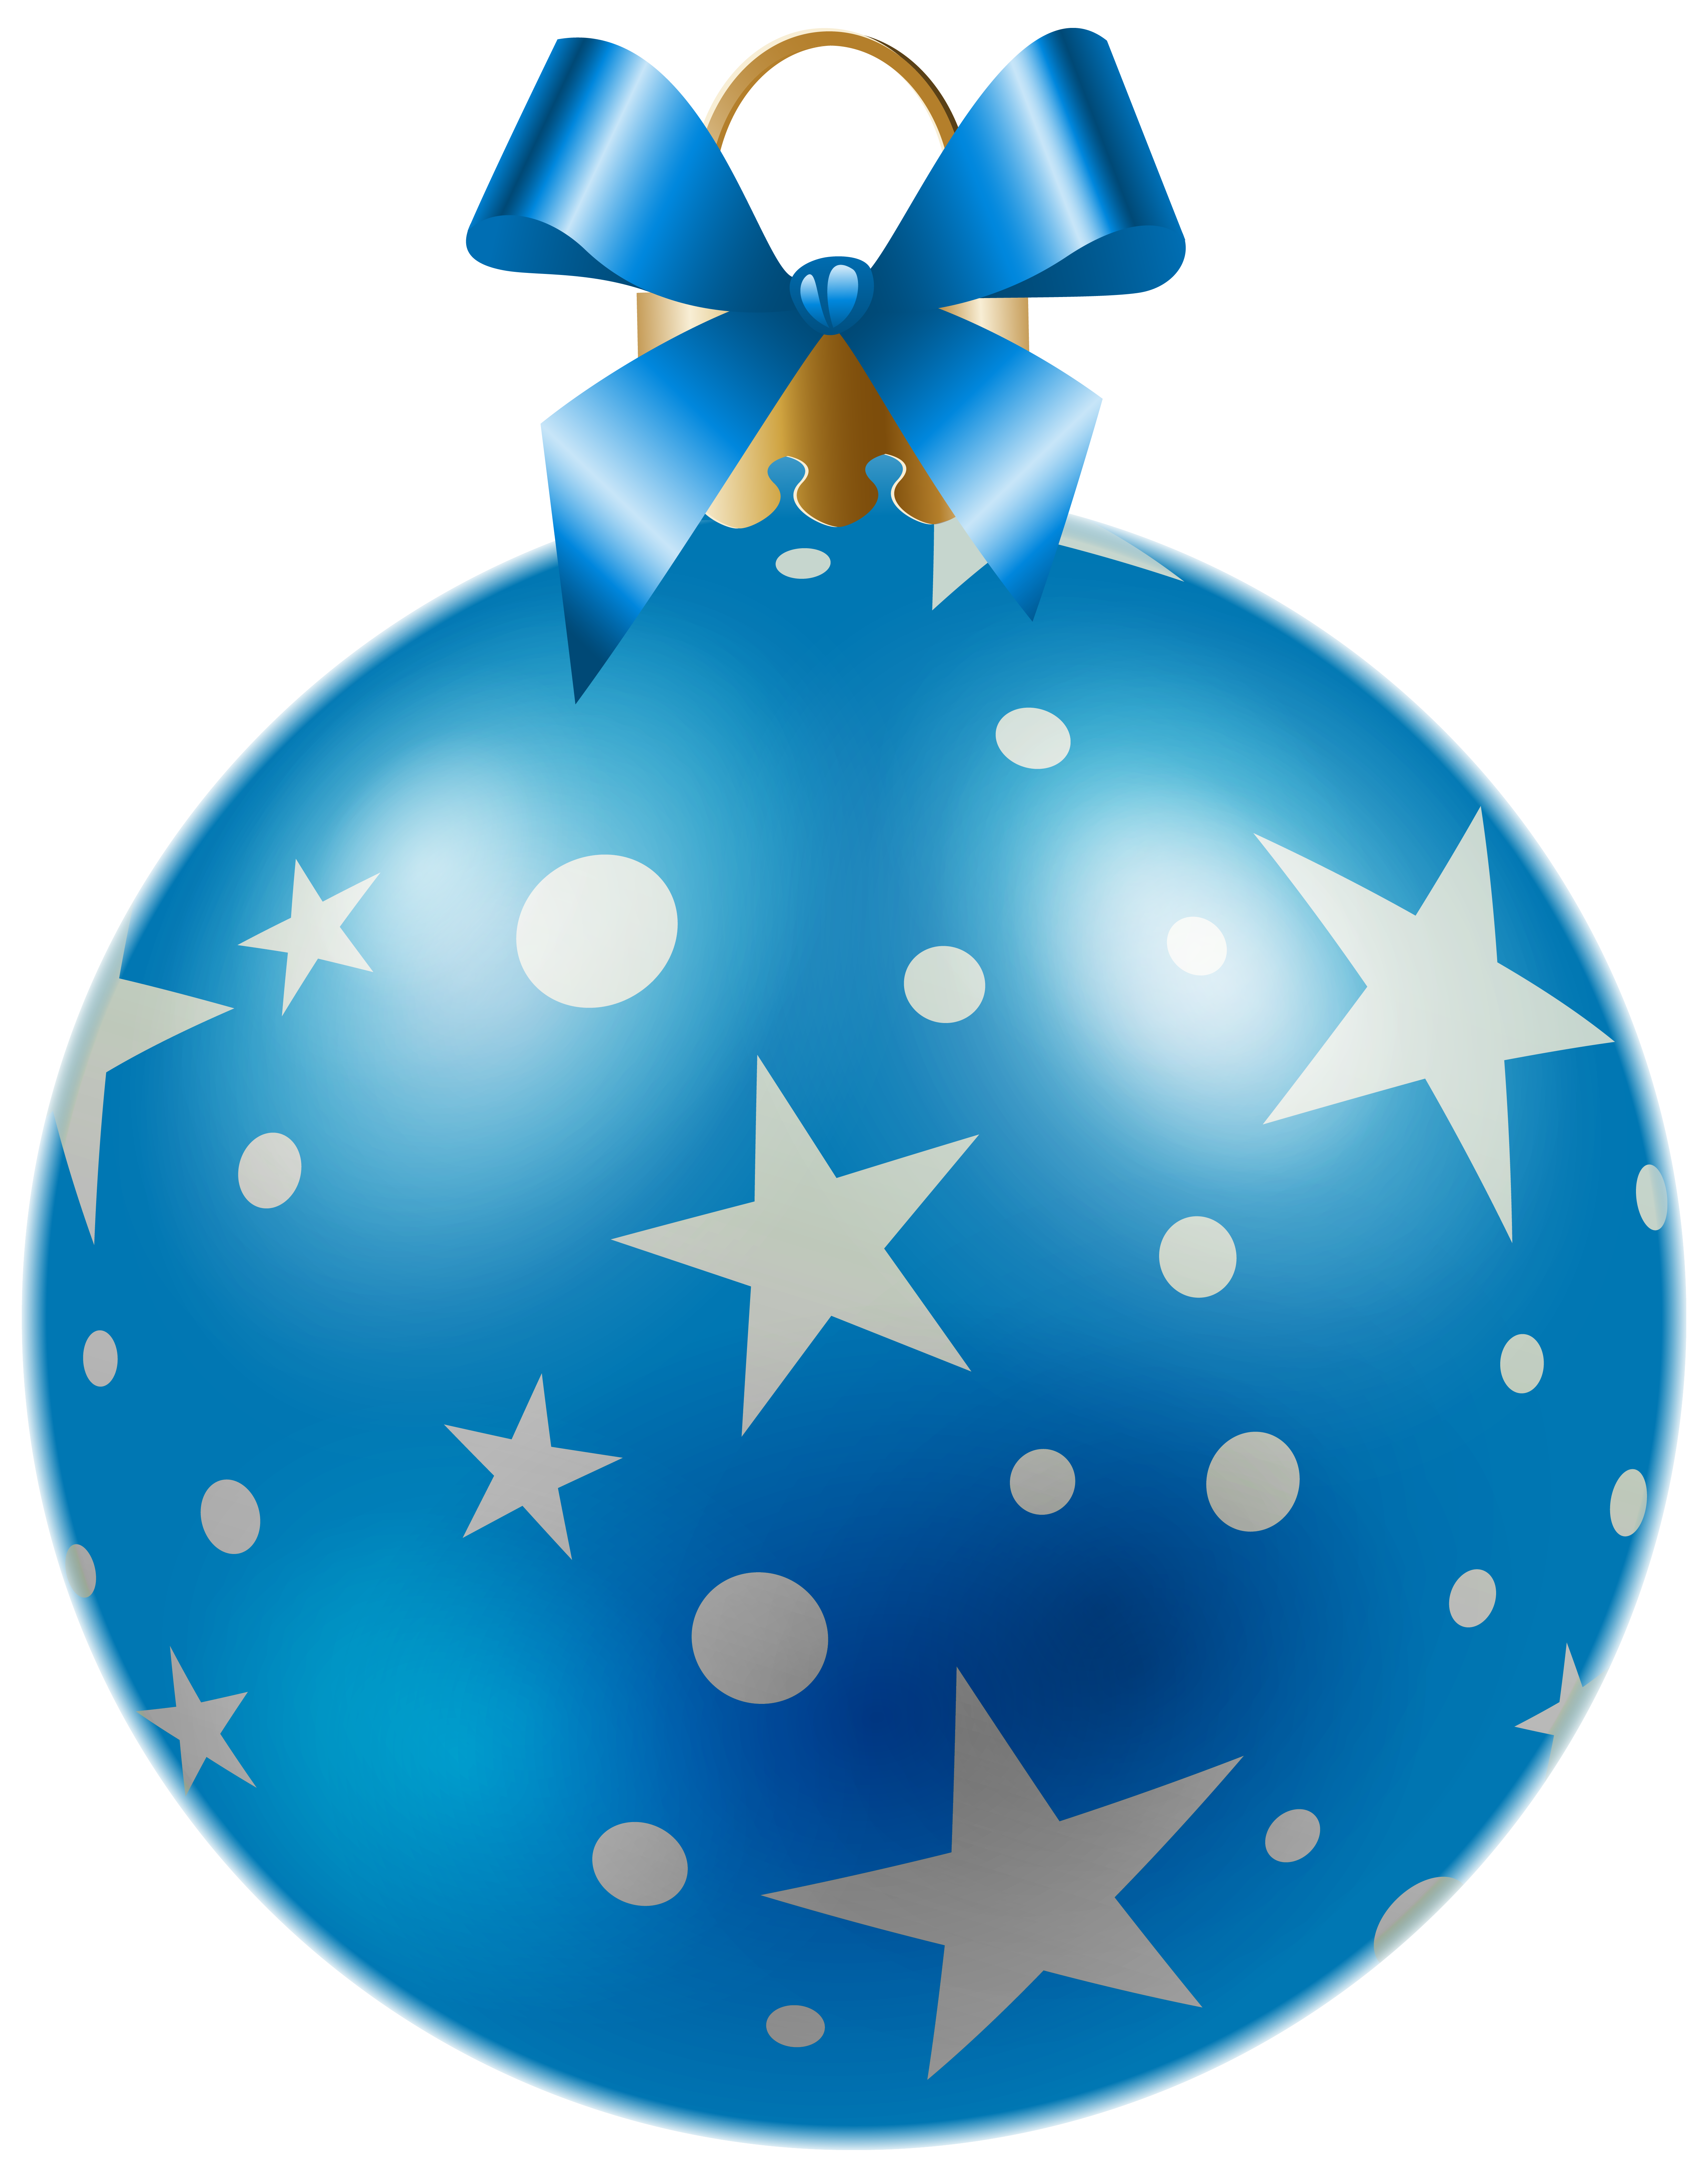 Holiday star clipart jpg free download Christmas Blue Ball with Stars PNG Clipart Image | Gallery ... jpg free download